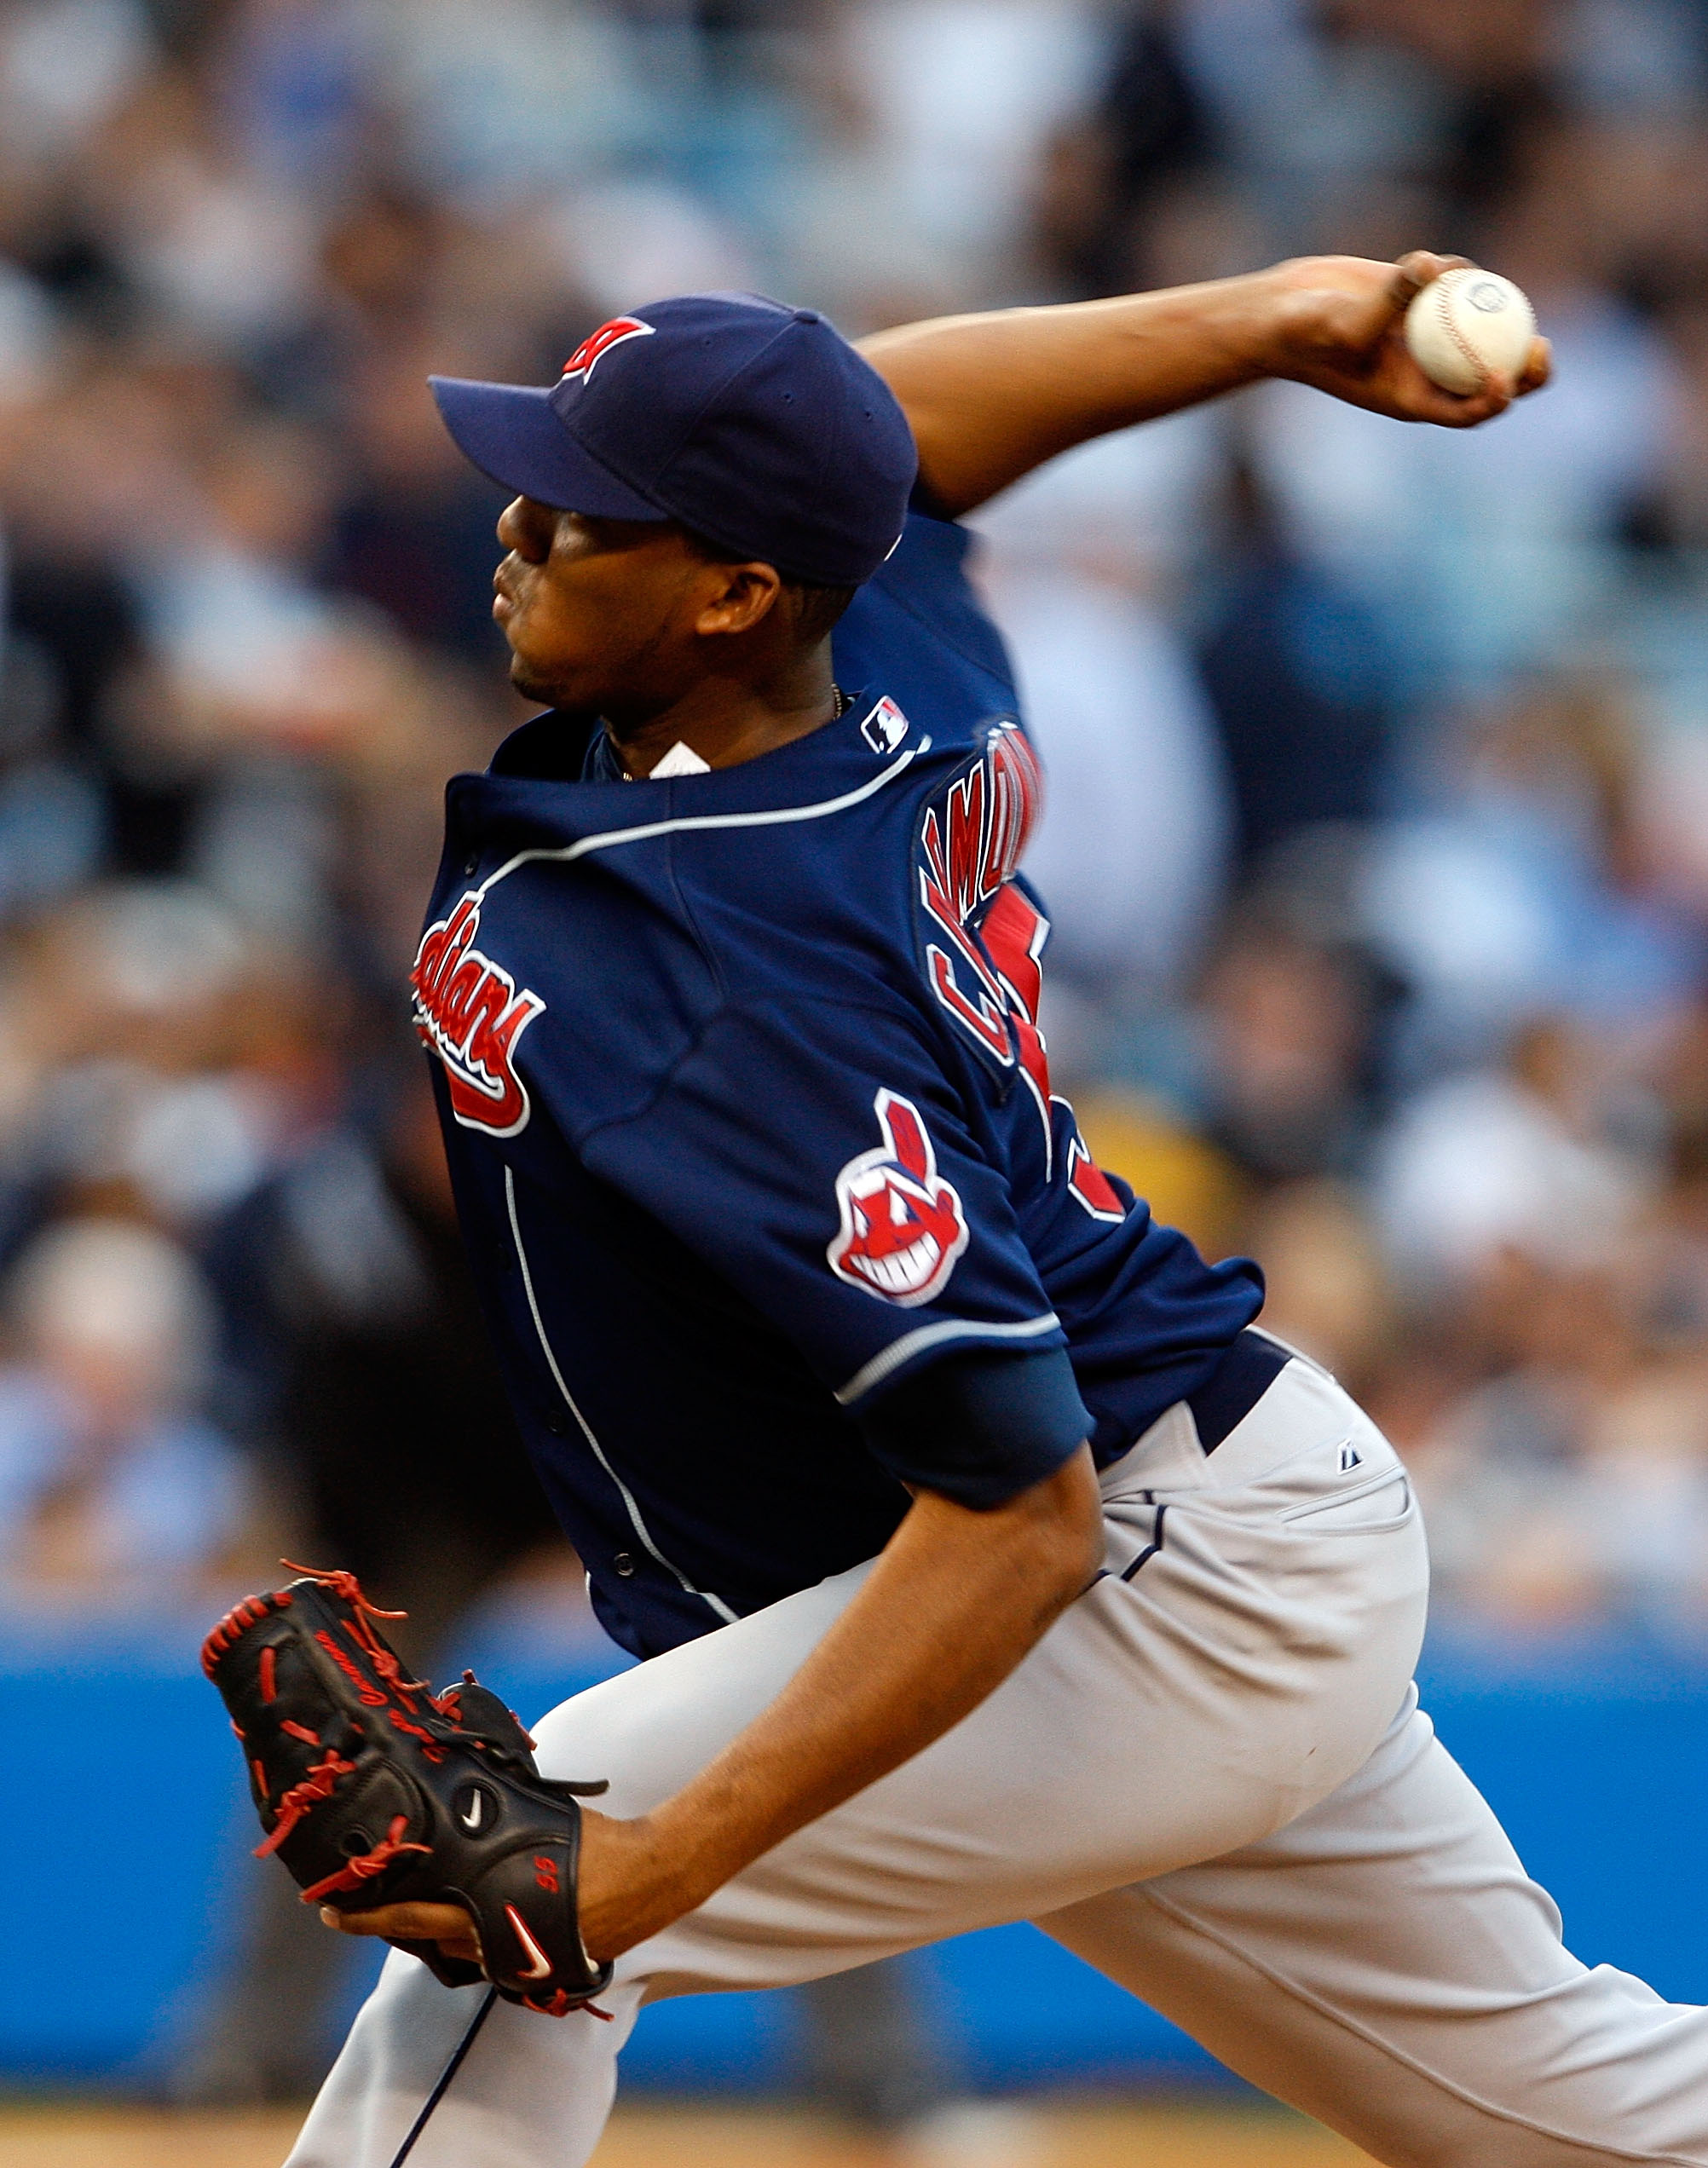 NEW YORK - MAY 06: Fausto Carmona #55 of the Cleveland Indians pitches against the New York Yankees on May 6, 2008 at Yankee Stadium in the Bronx borough of New York City.  (Photo by Nick Laham/Getty Images)